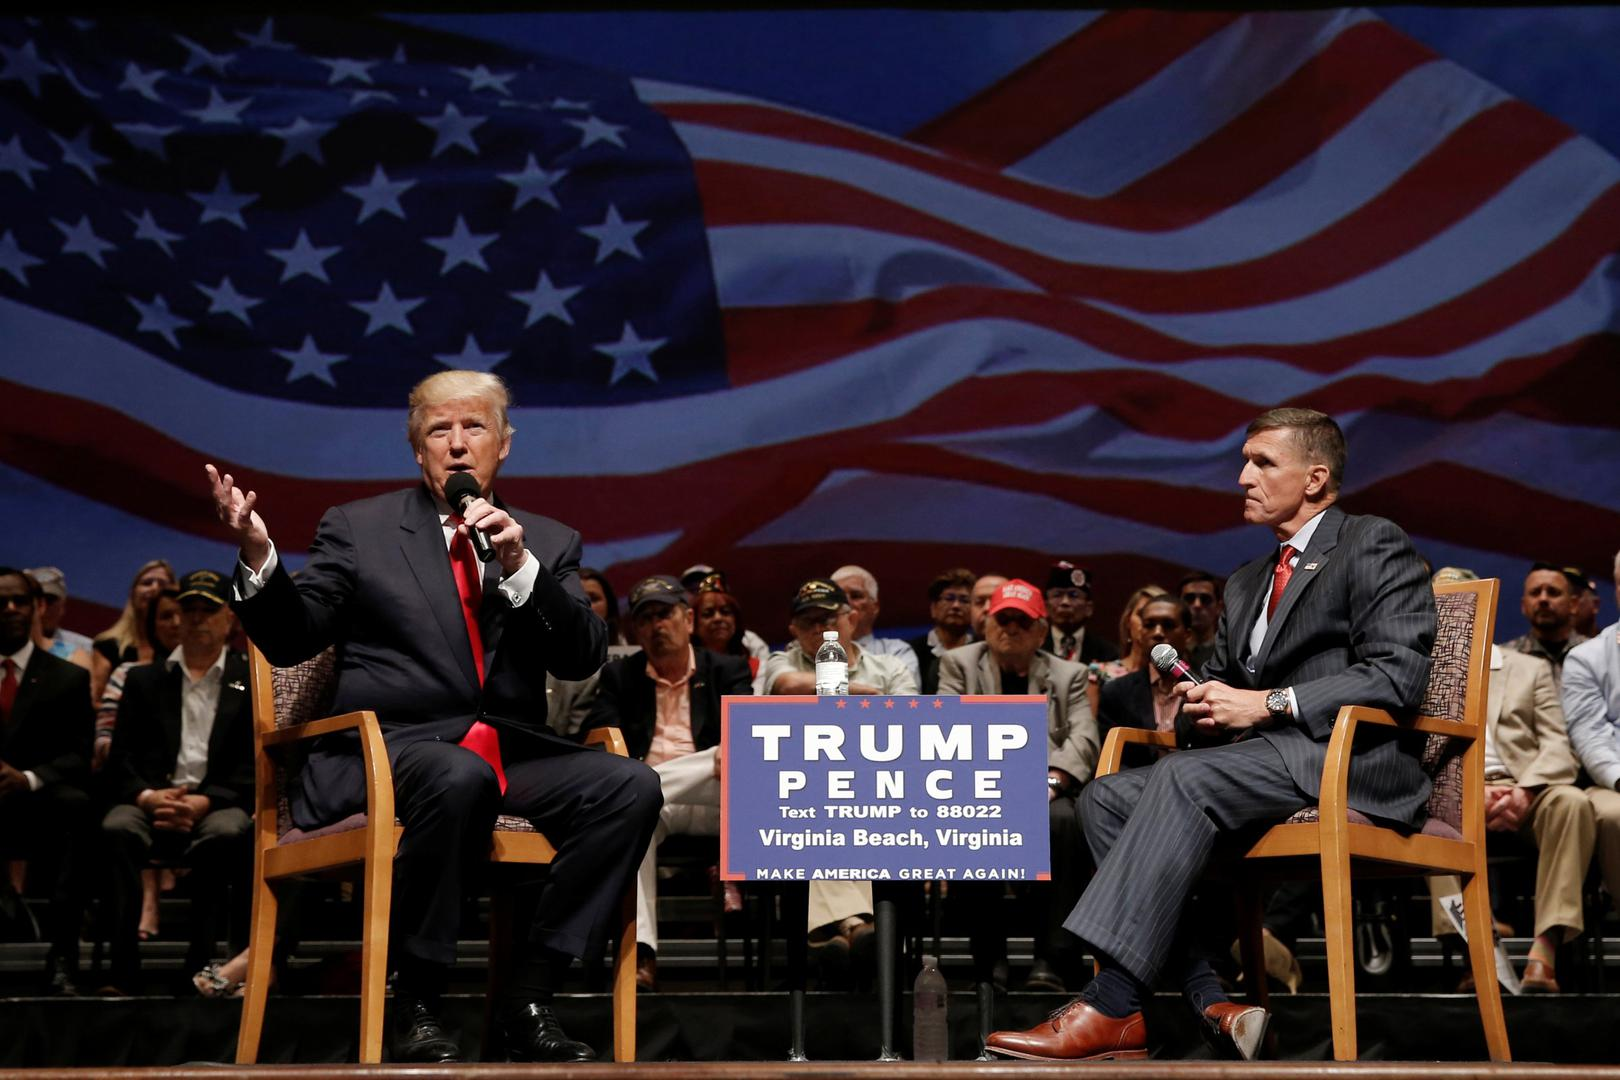 Donald Trump speaks alongside retired Lt. Gen. Mike Flynn during a campaign town hall meeting in Virginia, US, on September 6, 2016.